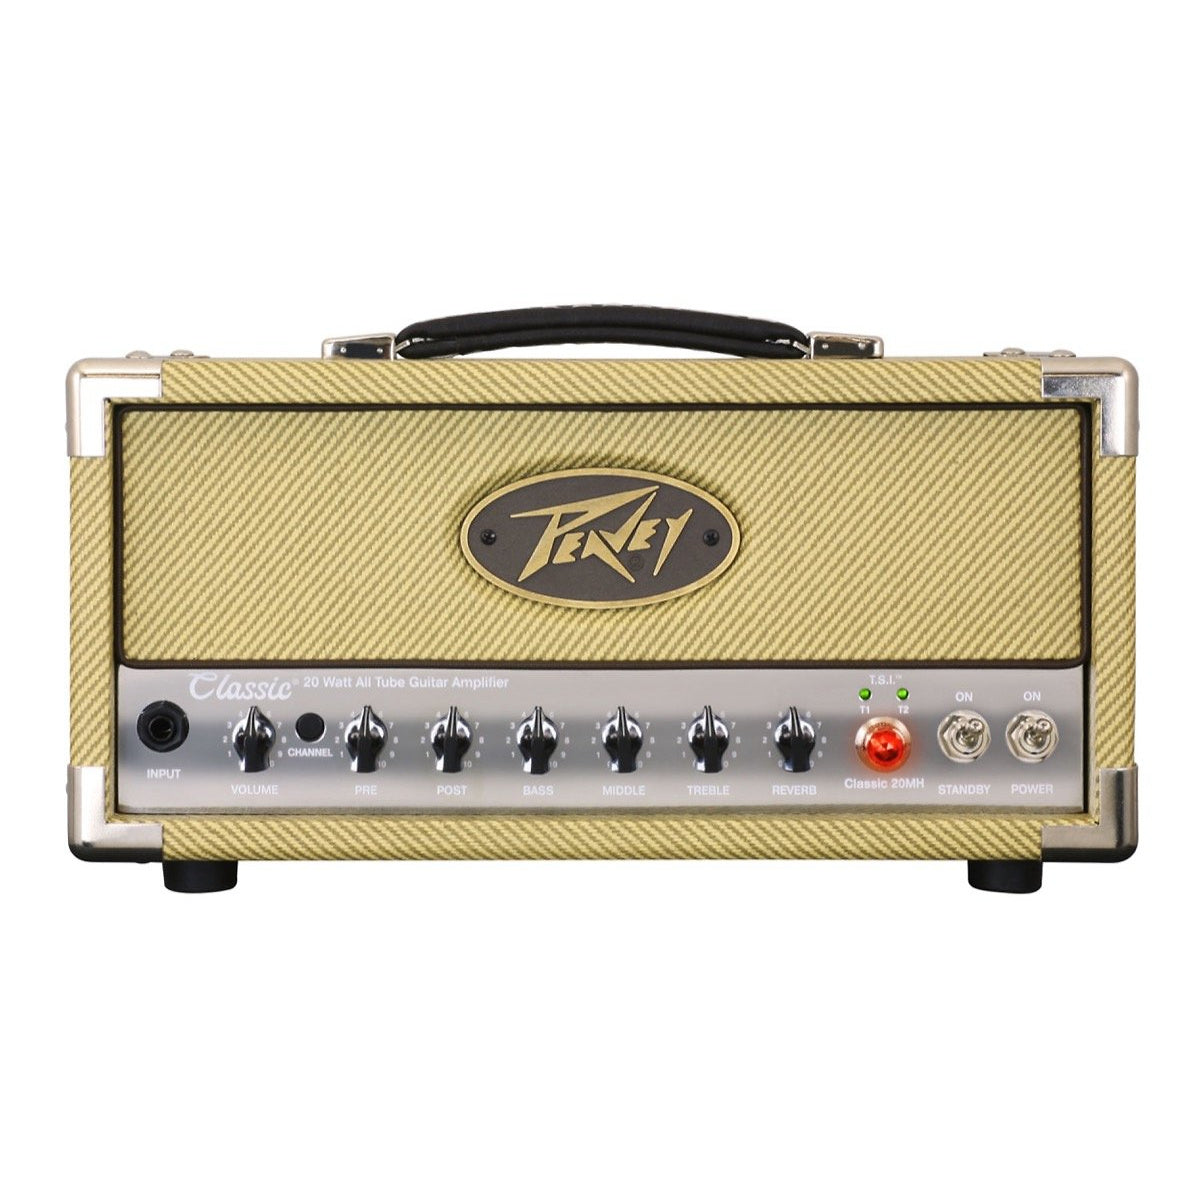 Peavey Classic 20 Mini Guitar Amplifier Head (20 Watts)